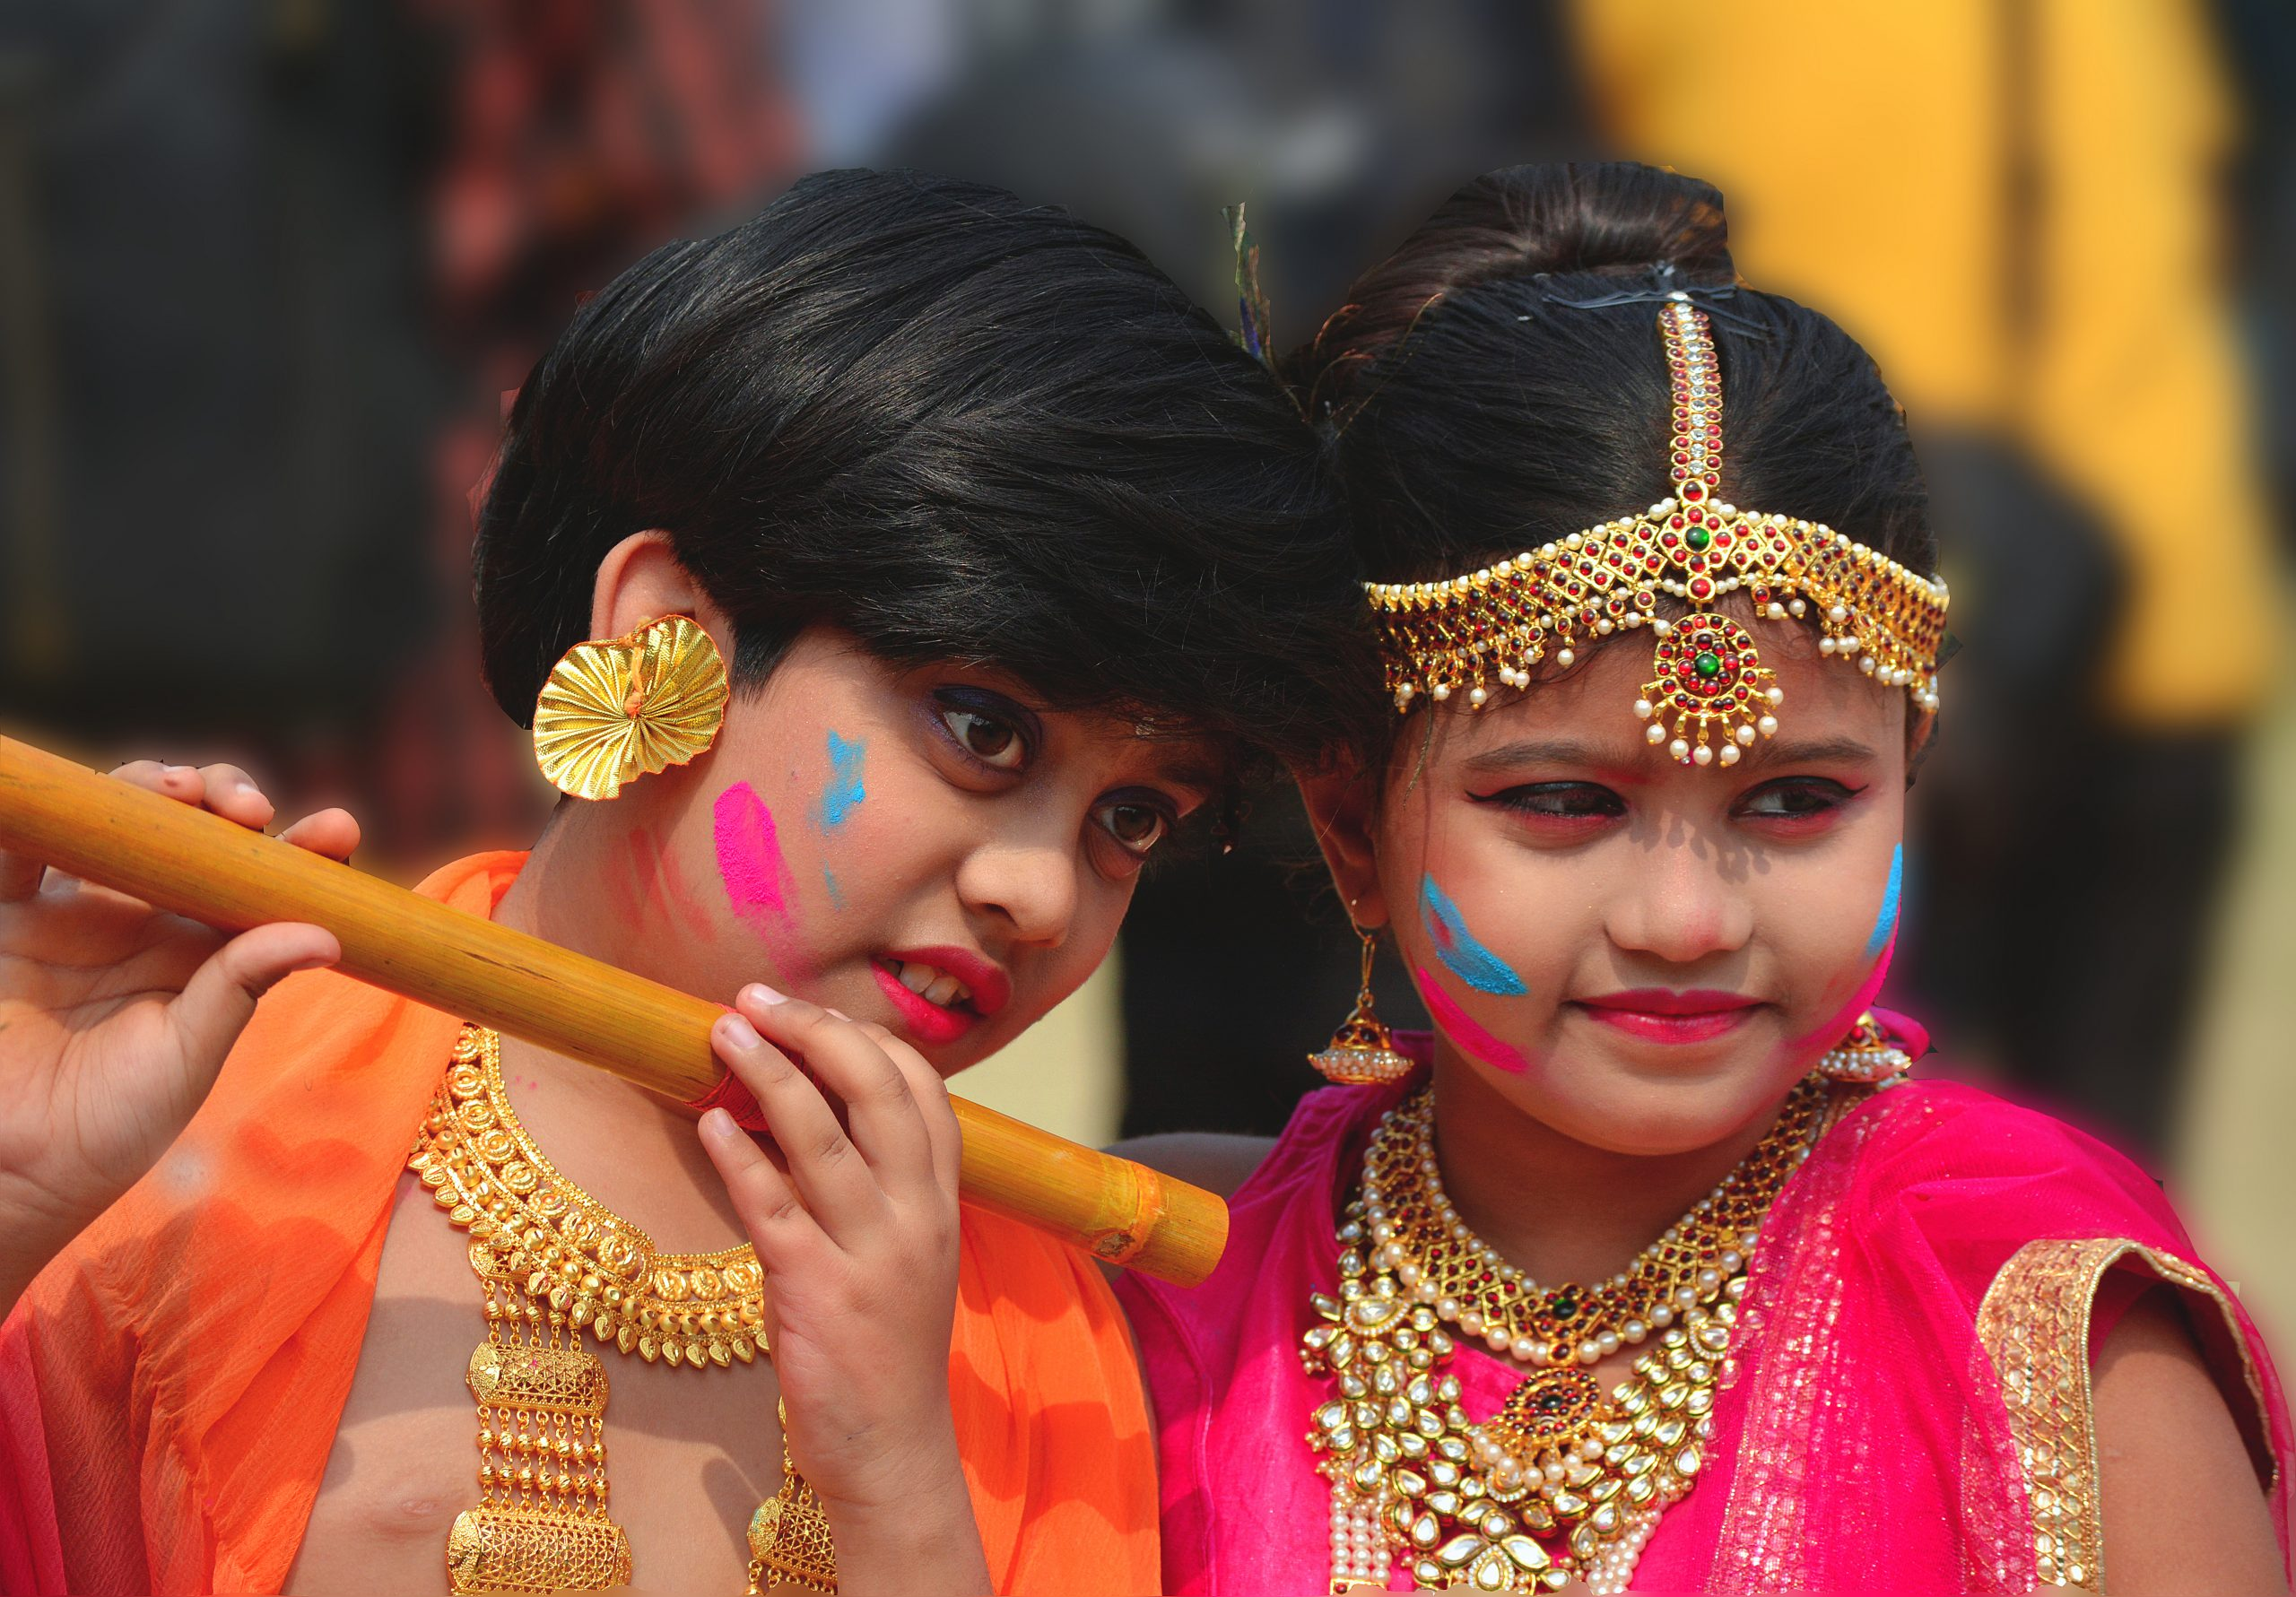 Kids in Radha-Krishna costume